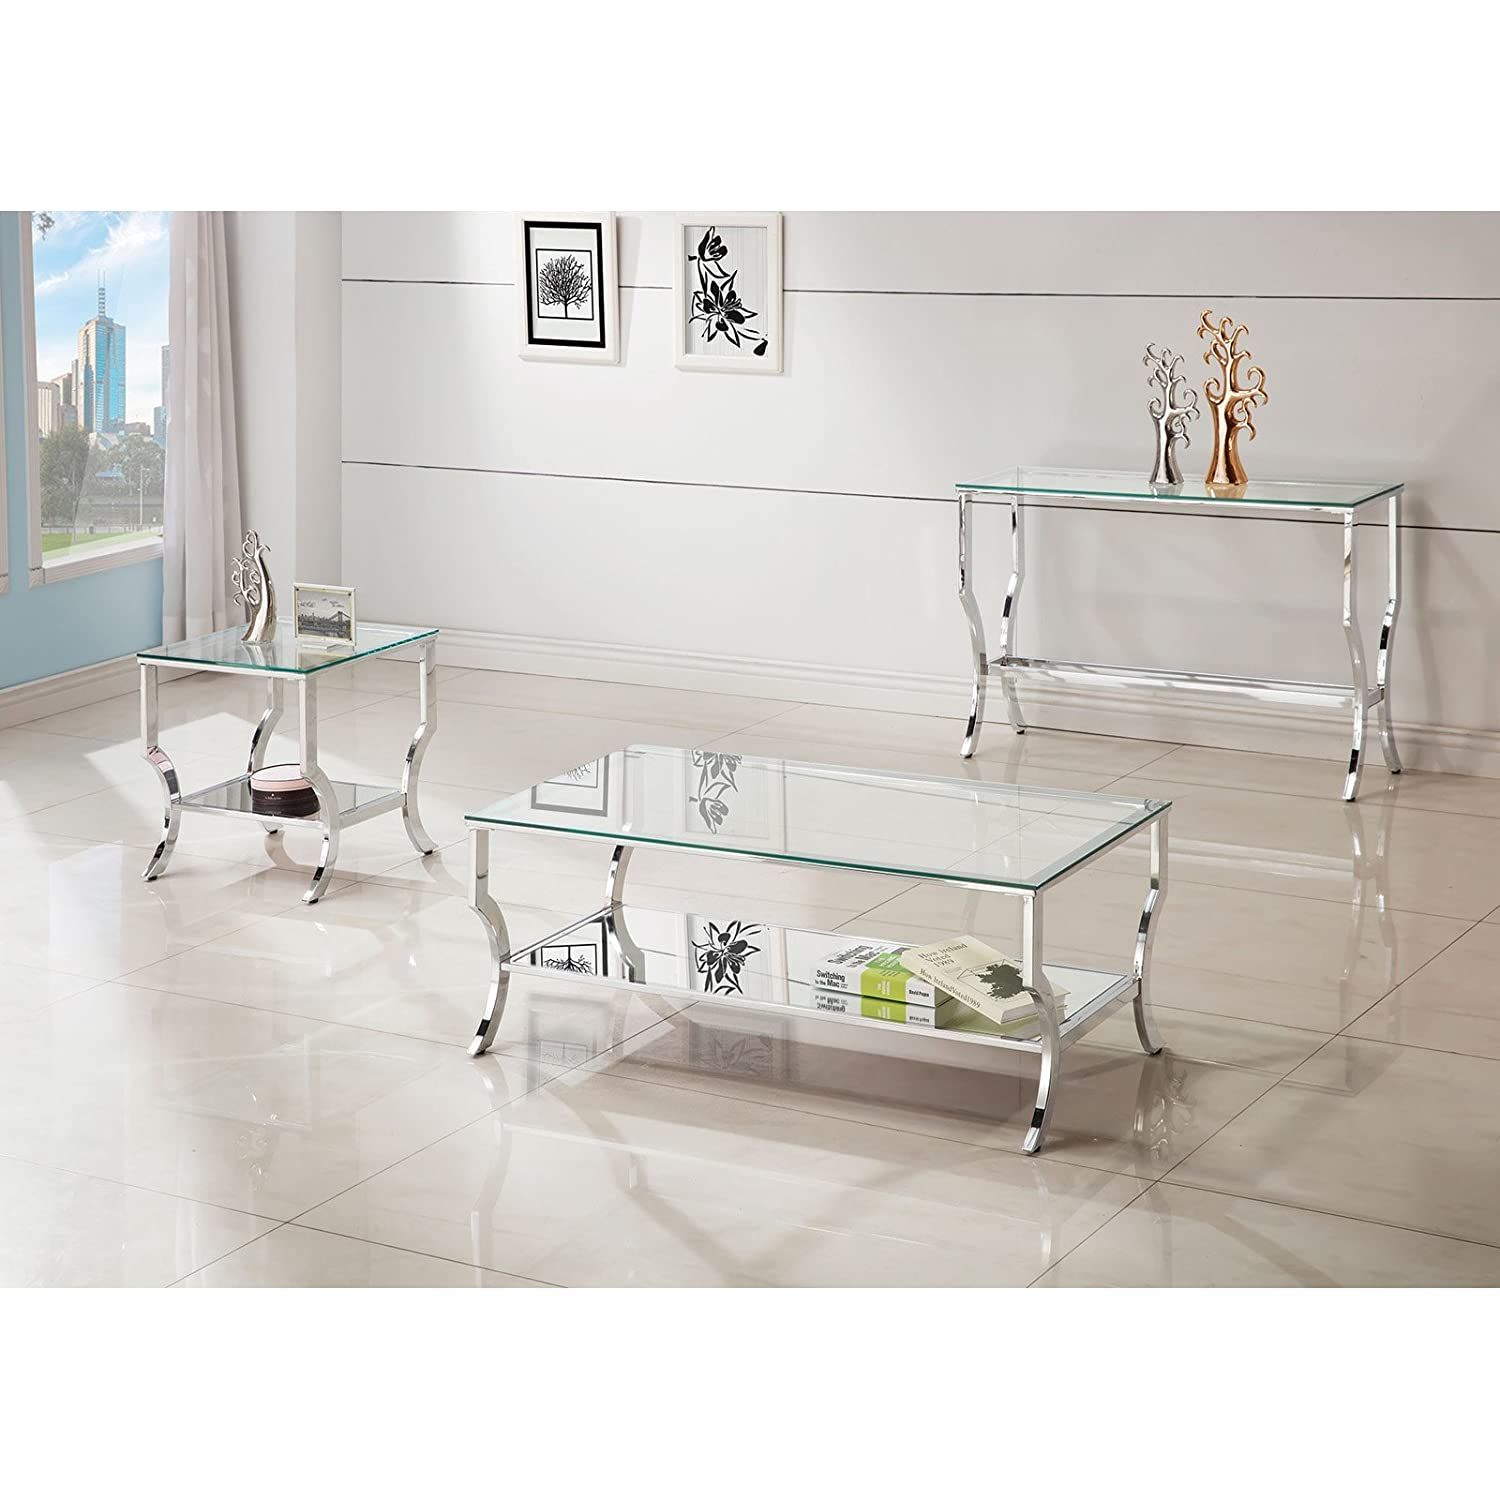 Amazon Coaster Glass Top Console Table in Chrome Kitchen